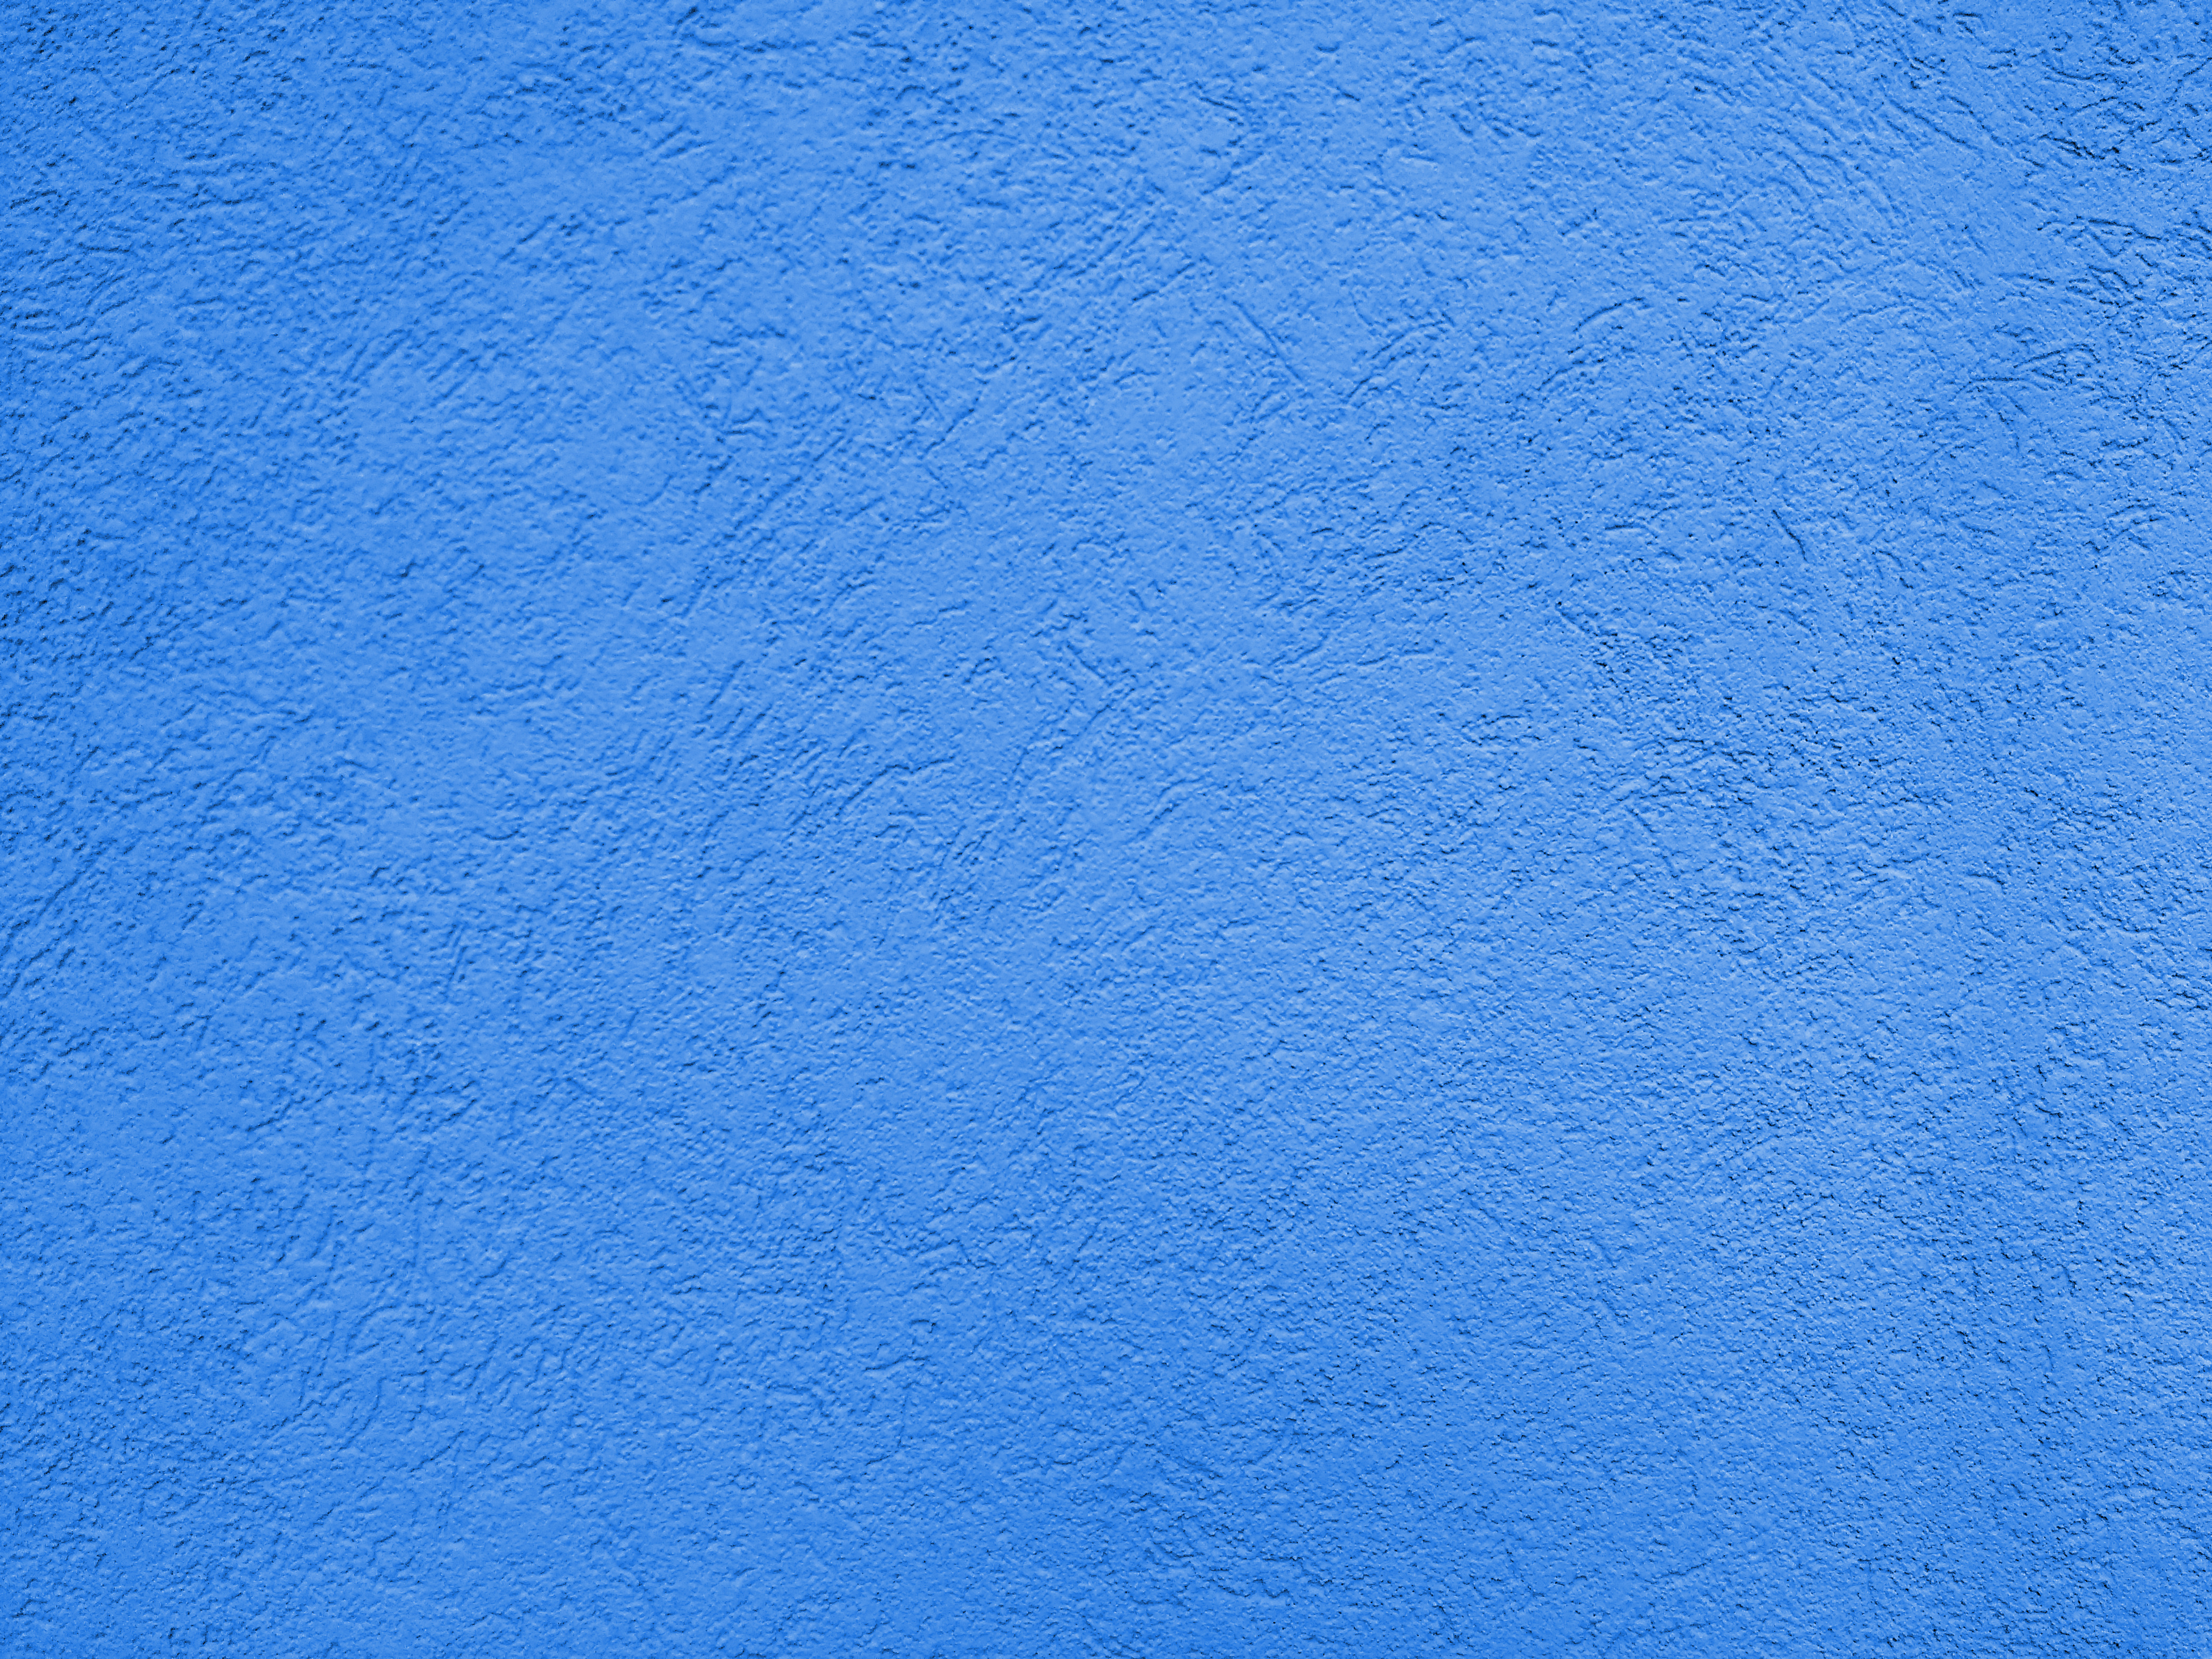 Sky Blue Textured Wall Close Up Picture | Free Photograph ...